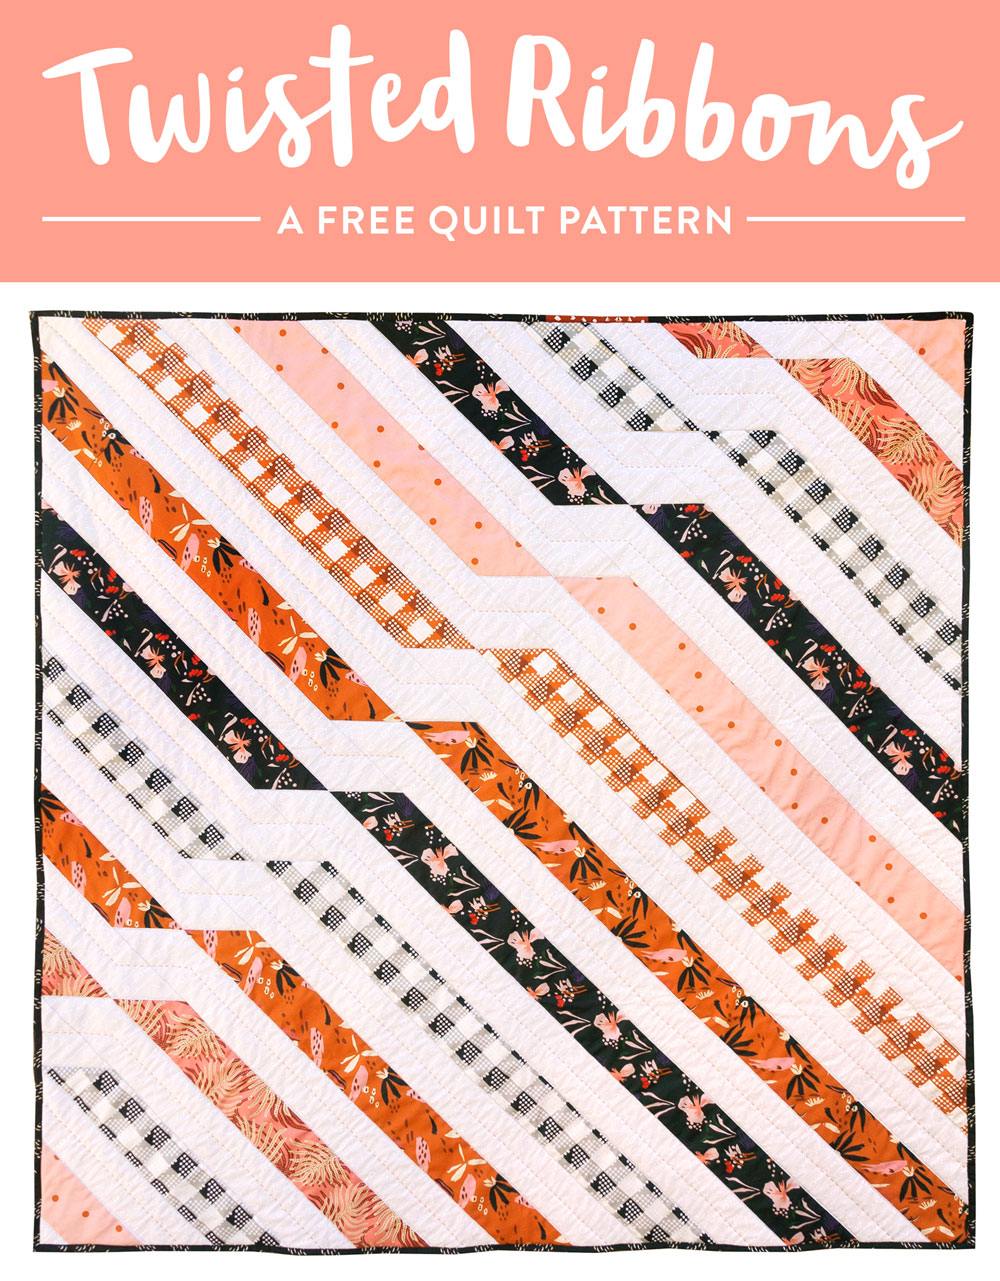 Get the free Twisted Ribbons quilt pattern and use Fill-A-Yard through Spoonflower